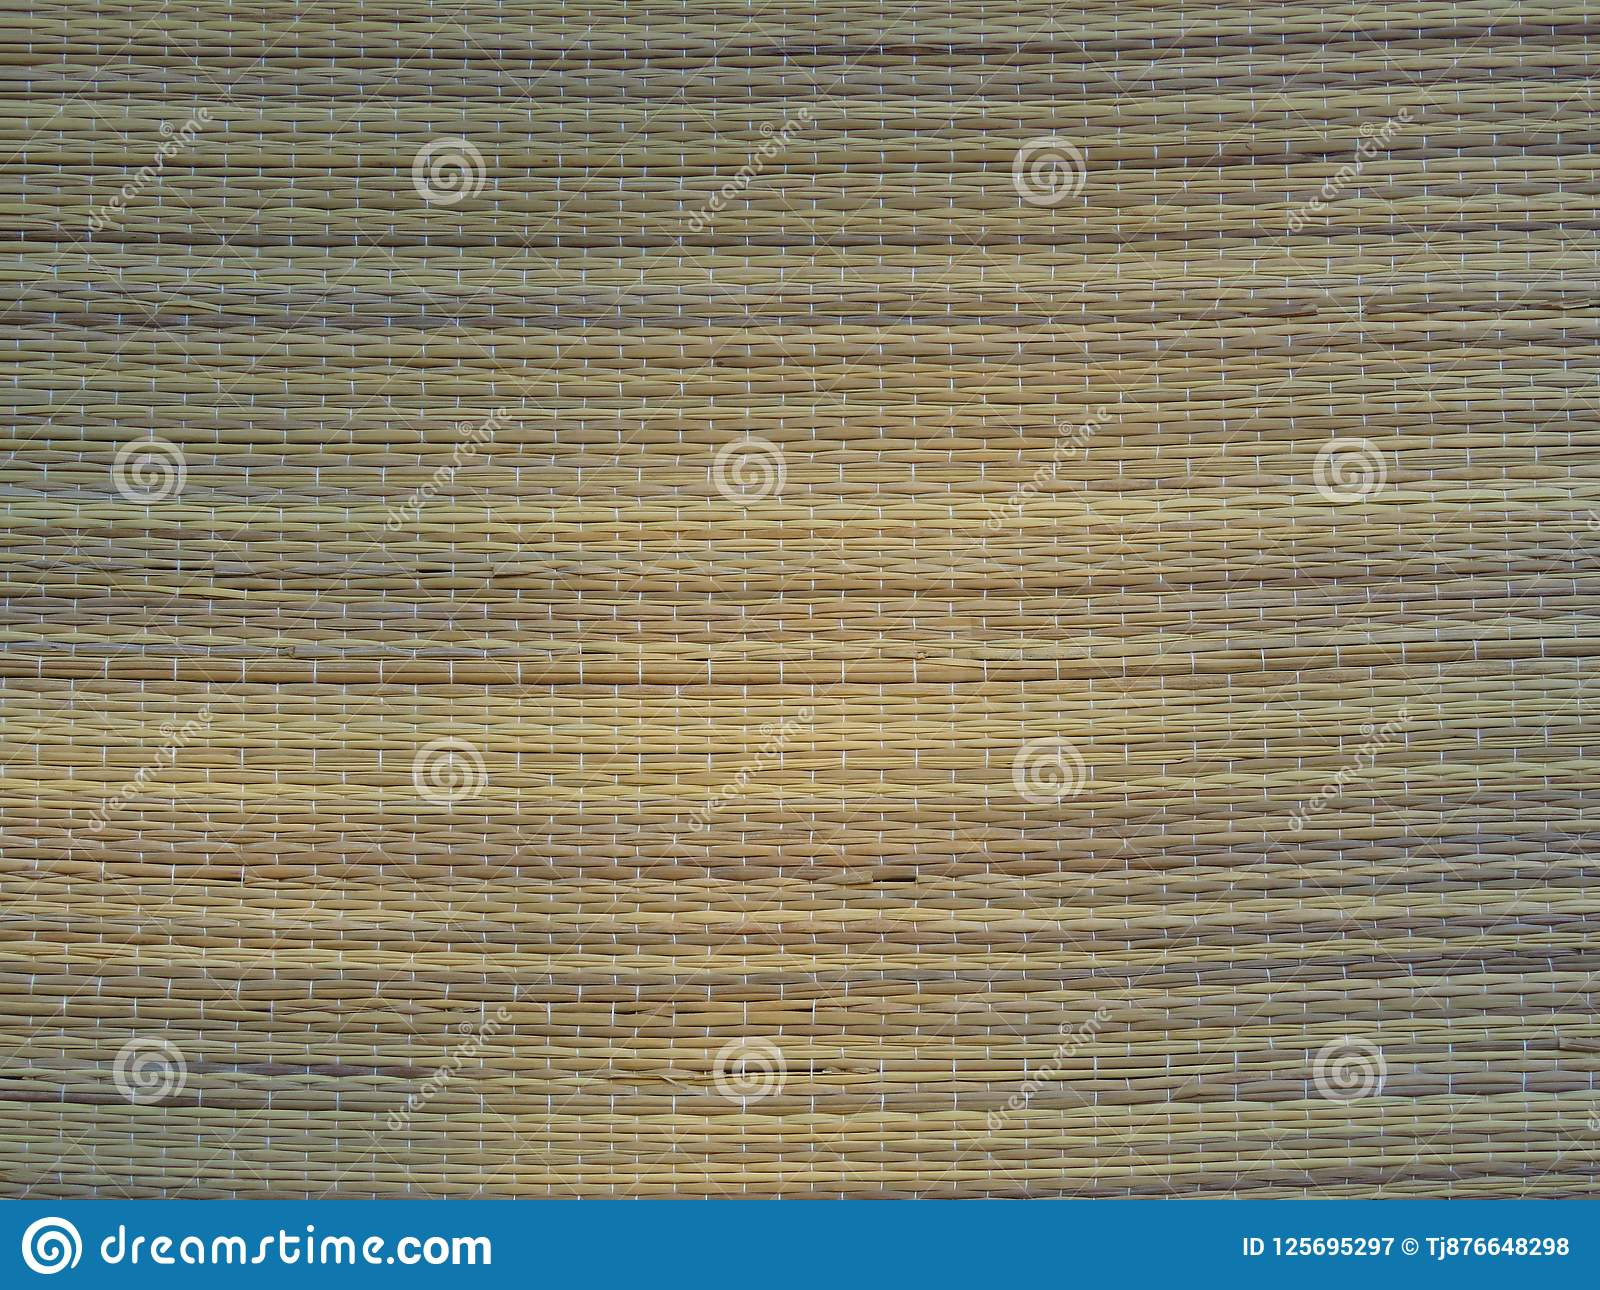 Woven Bamboo Mat Background Straw Weave Texture. Rustic lifestyle.